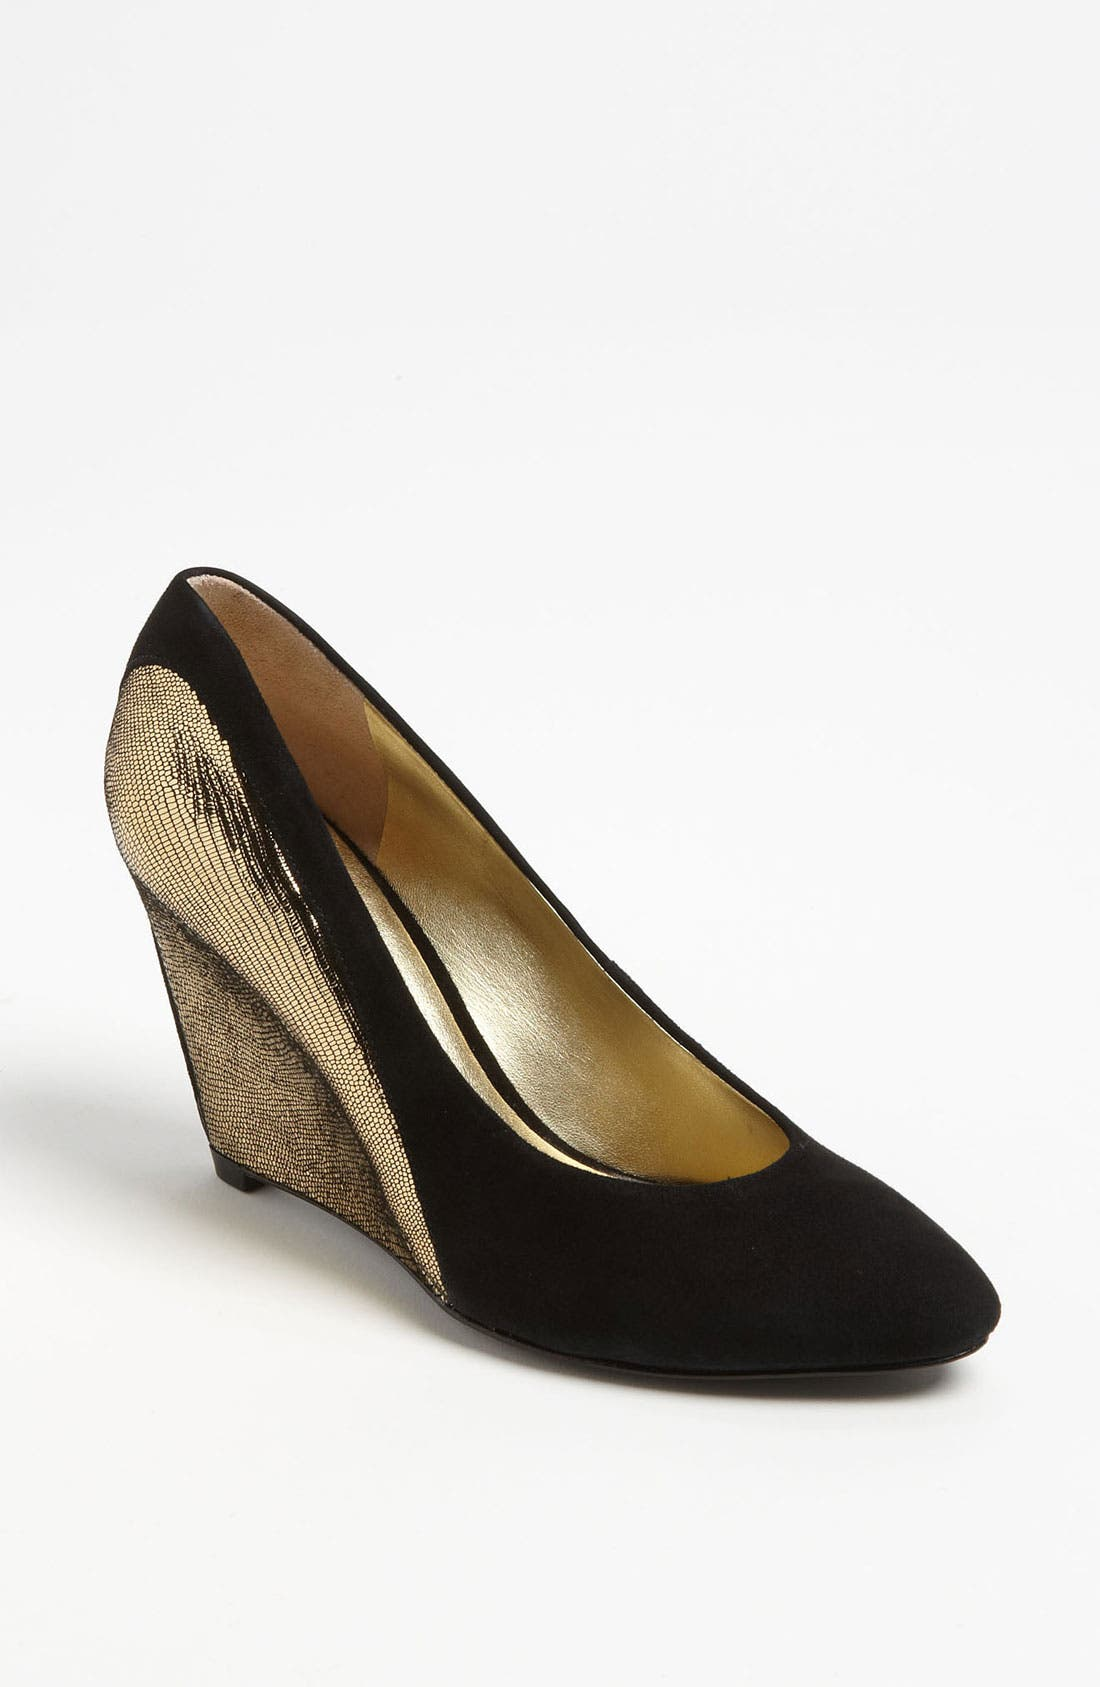 Main Image - Belle by Sigerson Morrison 'Footsie' Wedge